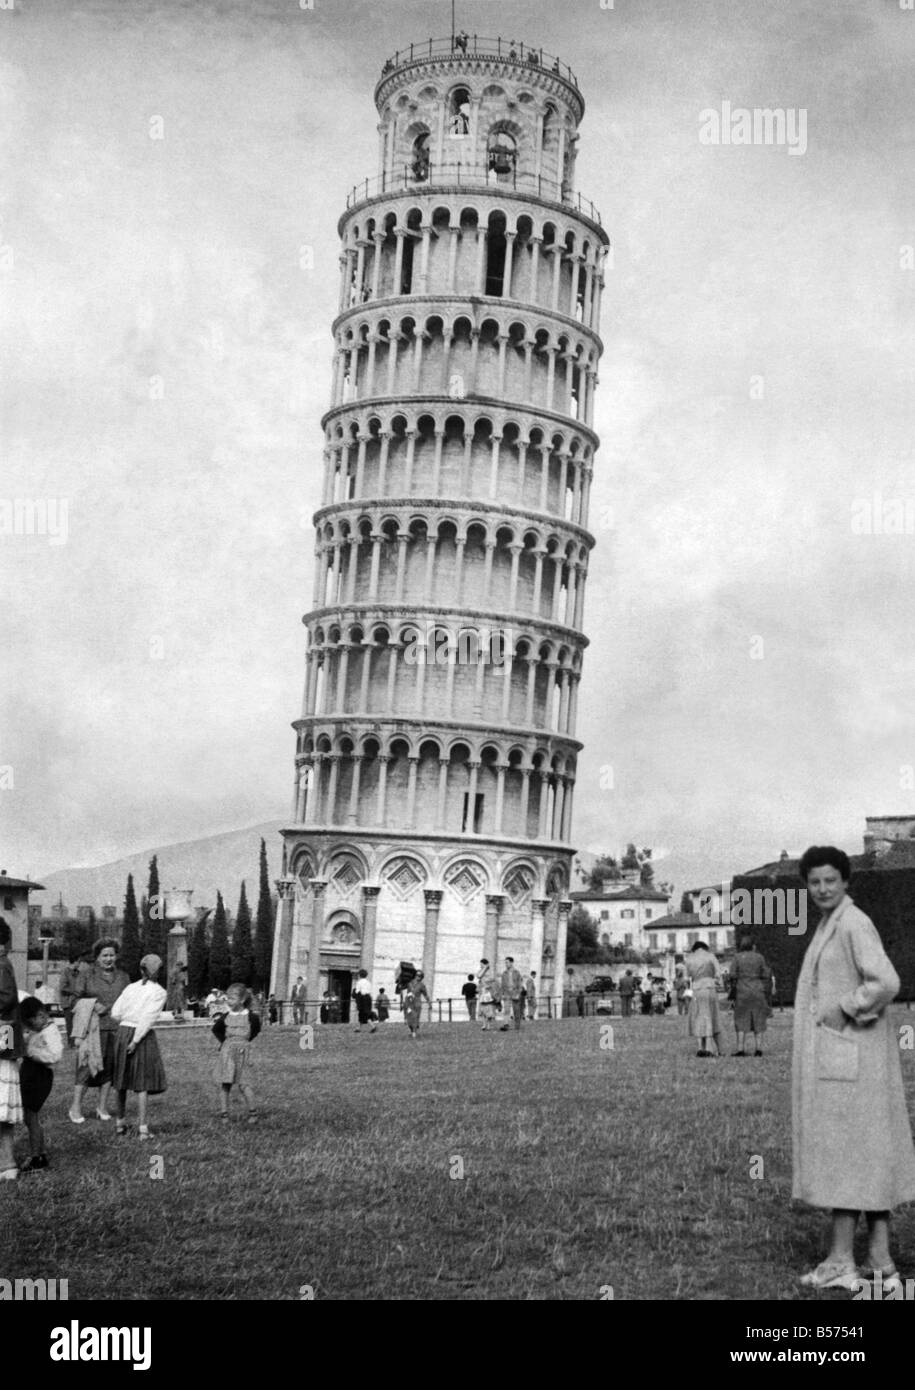 The Leaning tower of Pisa, Italy. May 1955 P009537 - Stock Image